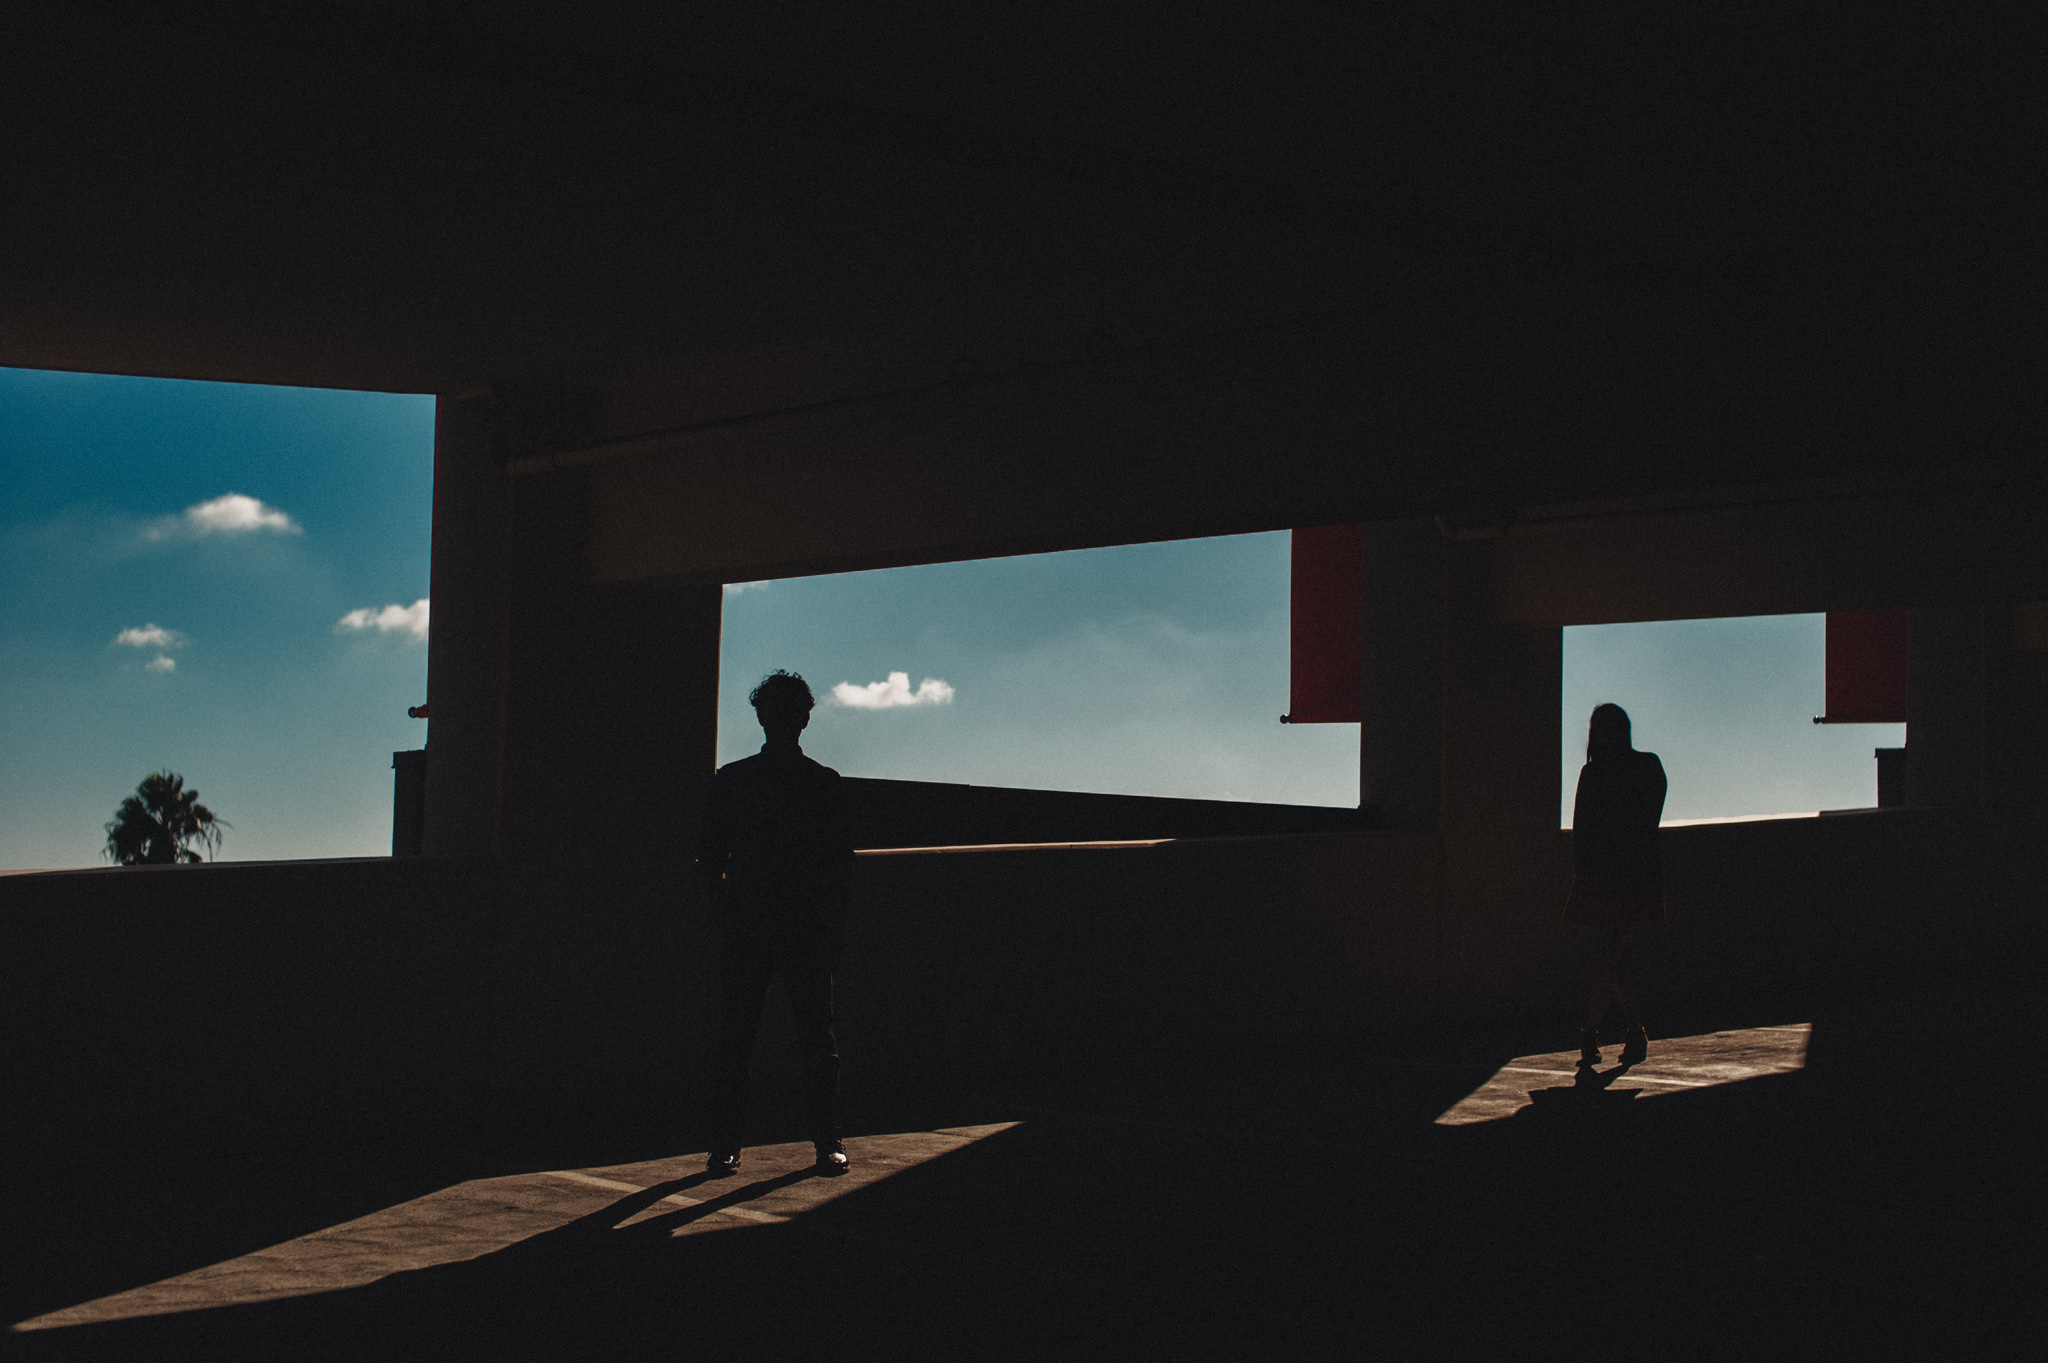 A man and his fiancé are silhouetted in a parking garage as the bright light from  outside backlights them.